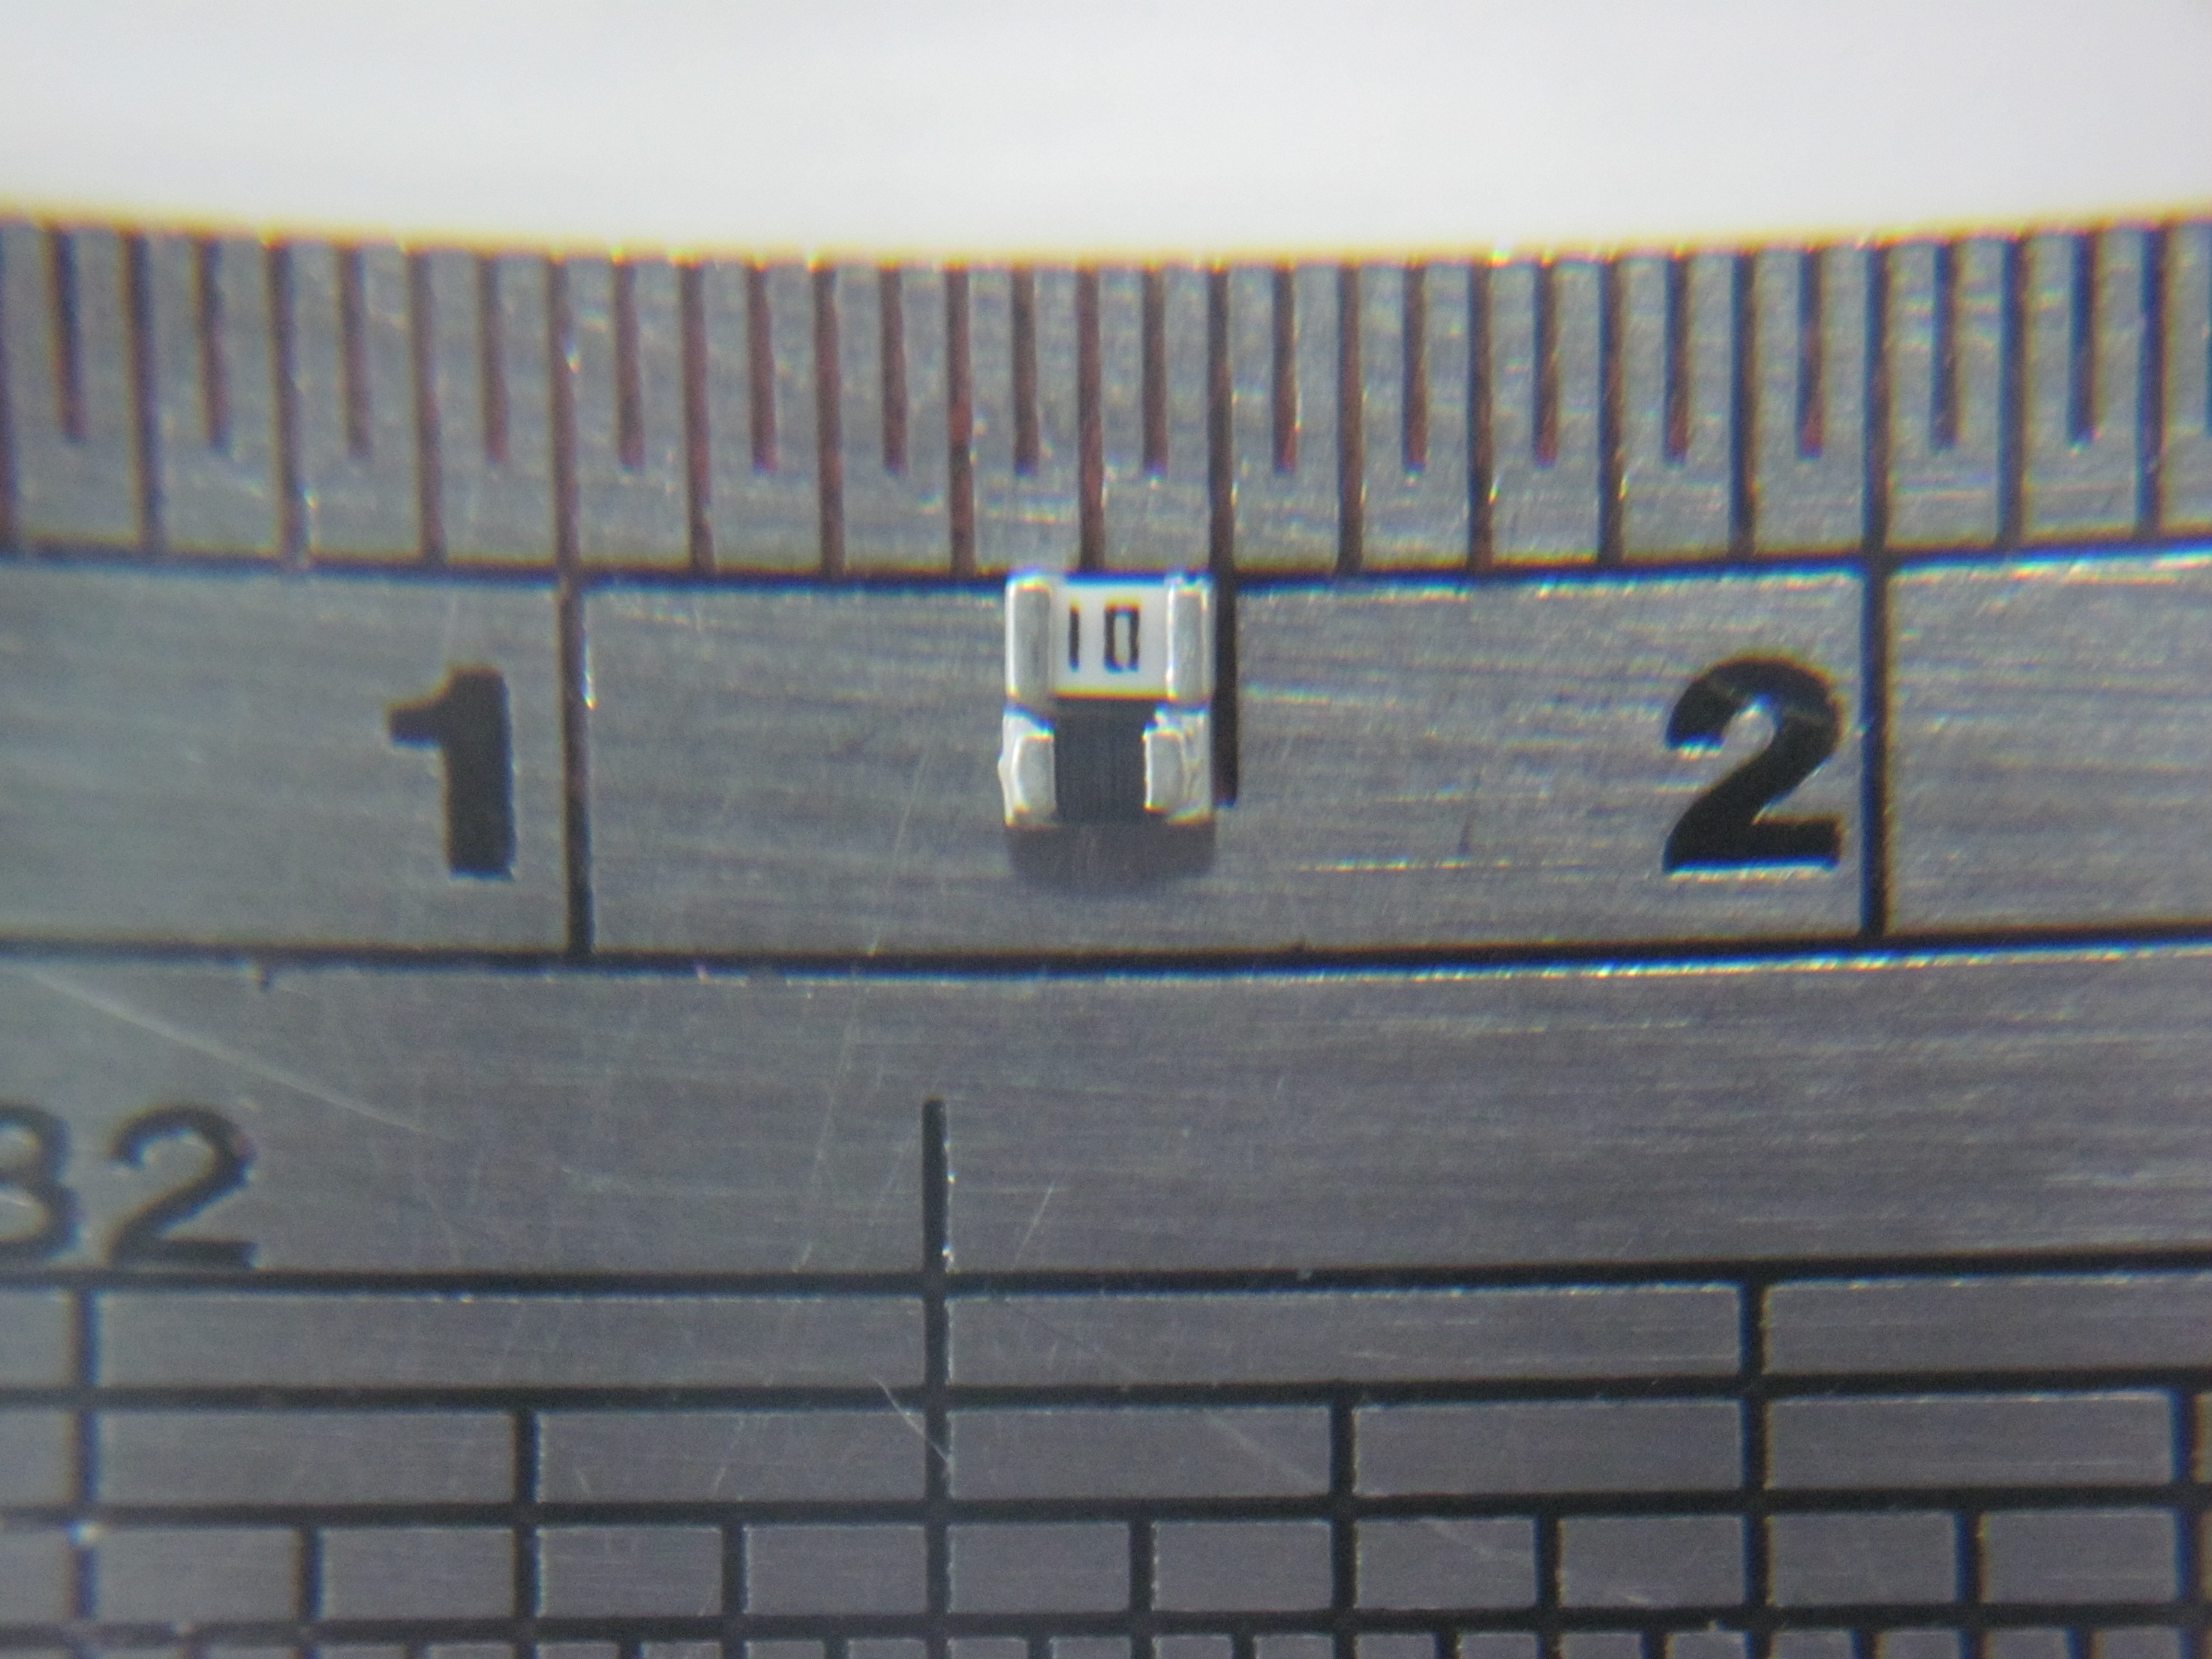 Current Sense Resistors Offer Values Down to 2 milliohm